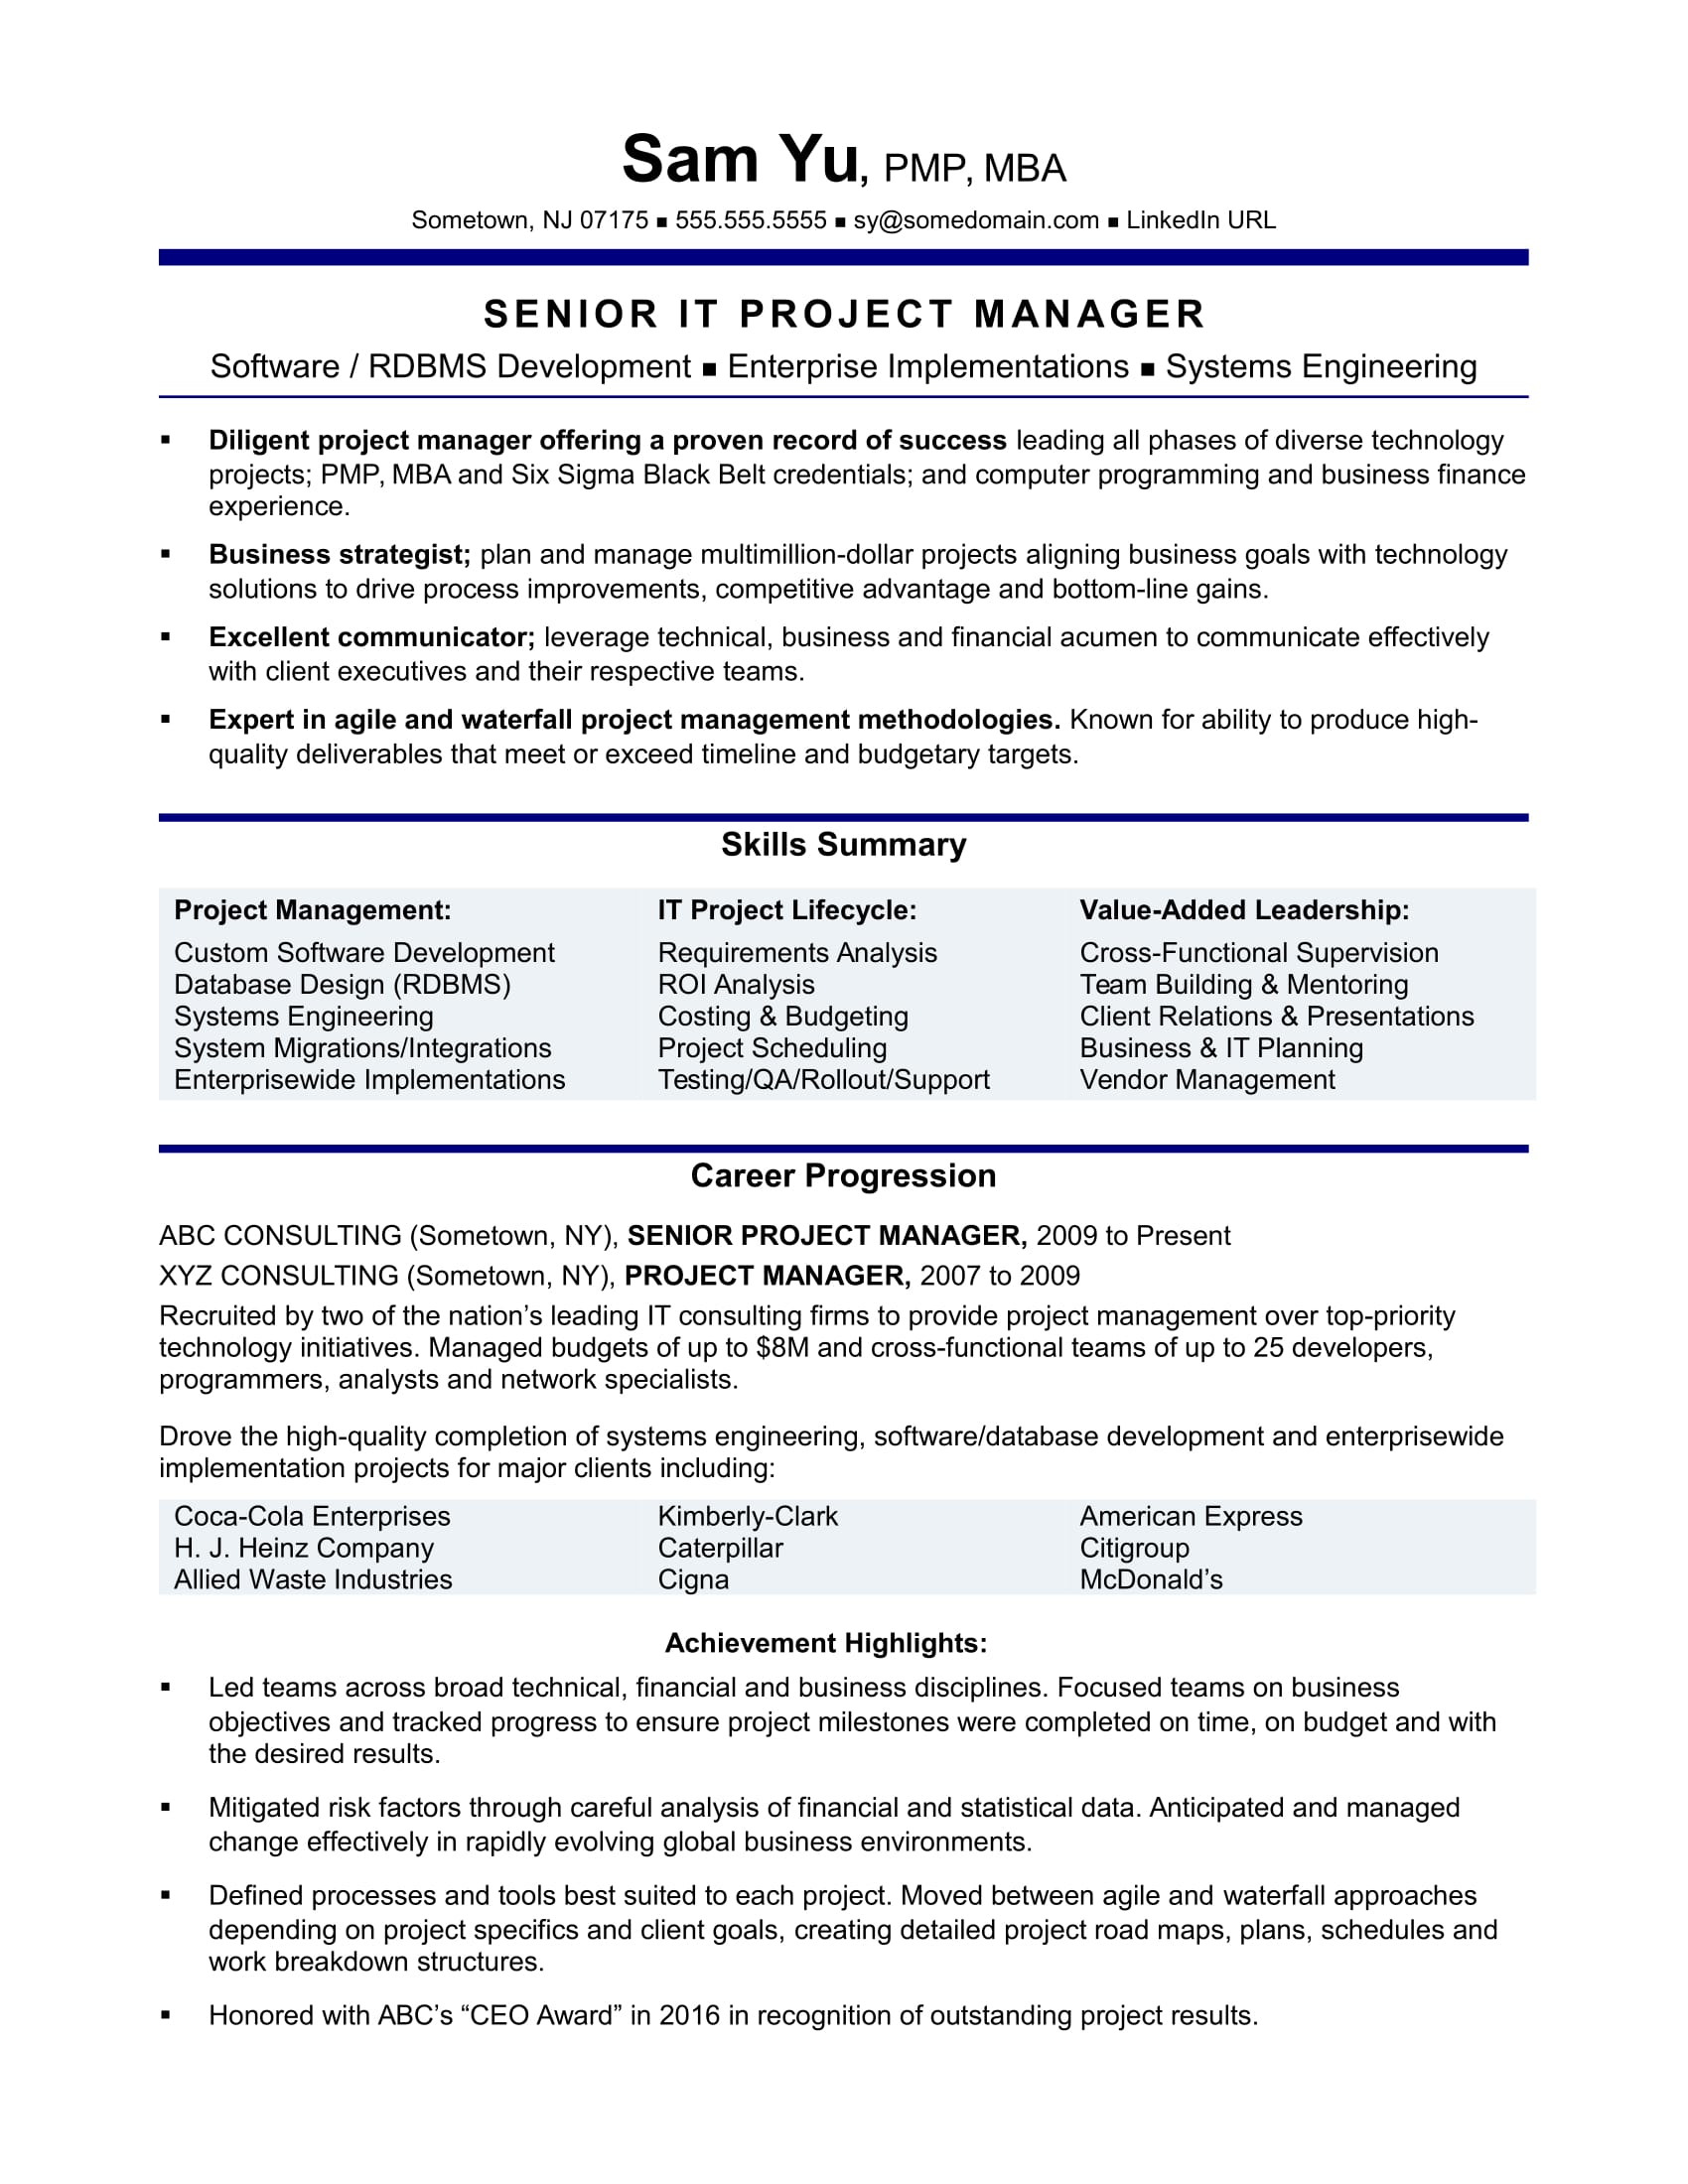 samples of resumes with summarys